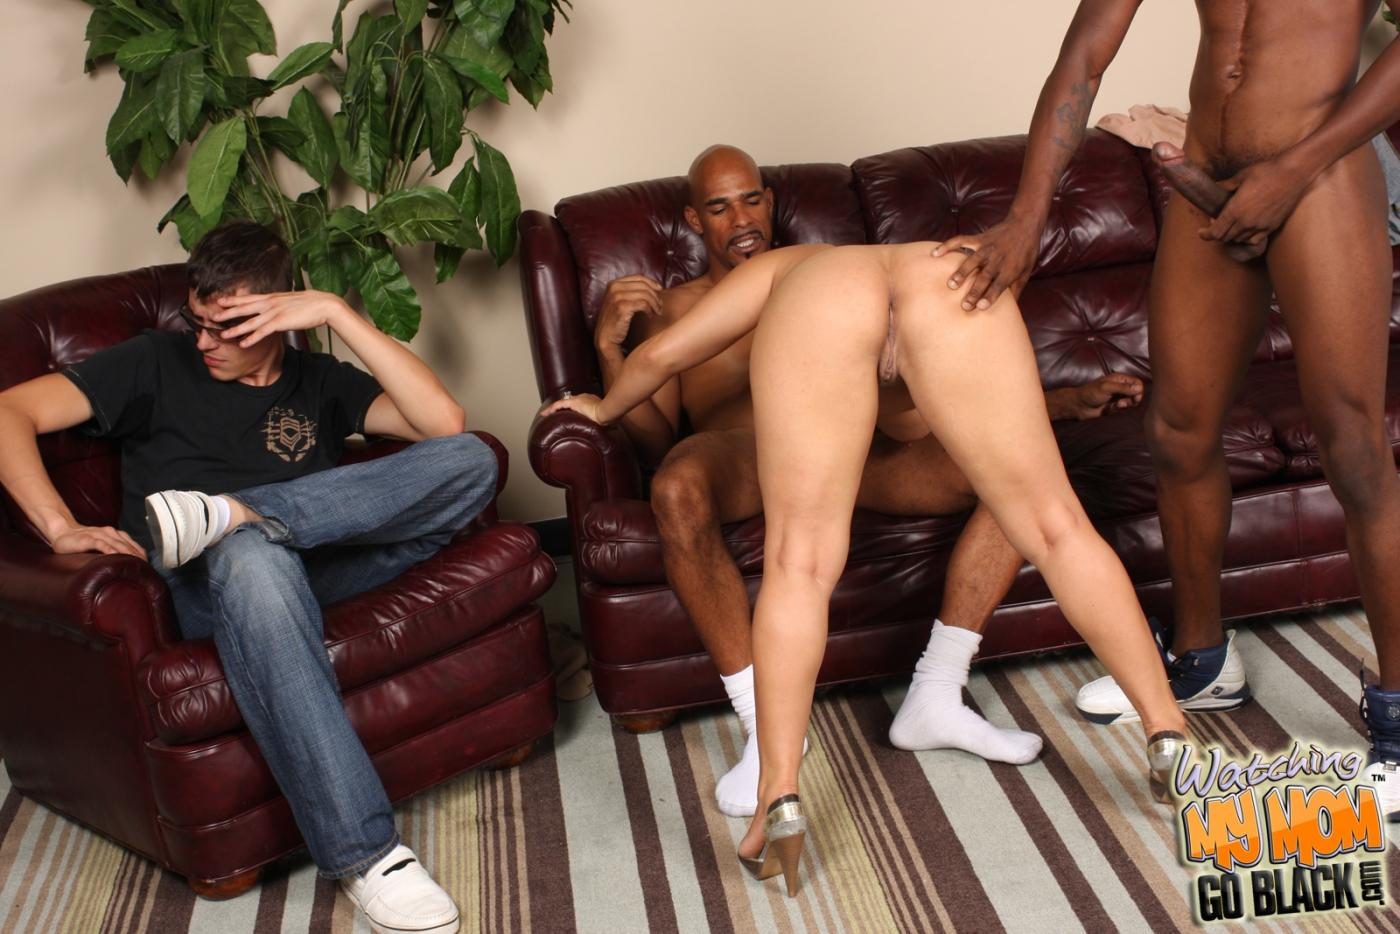 Black mom and son nude — photo 3